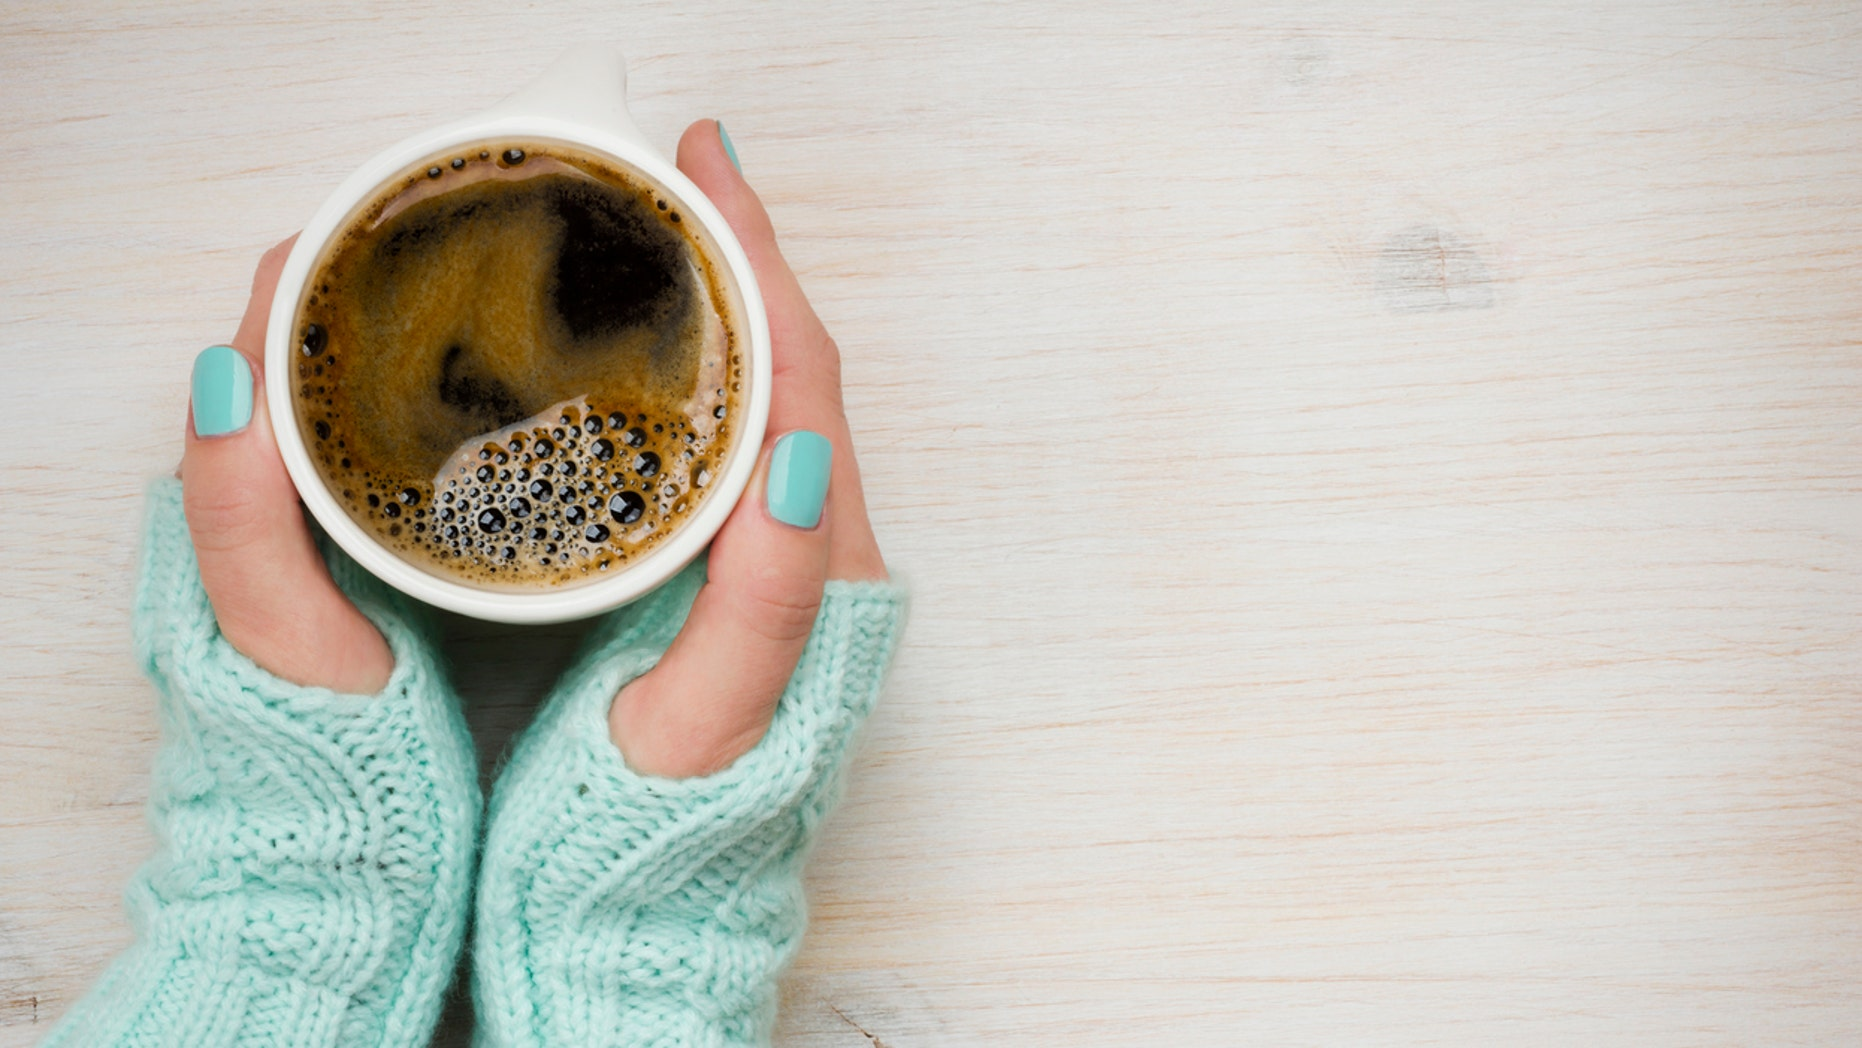 Female hands holding a coffee mug in knitted mittens